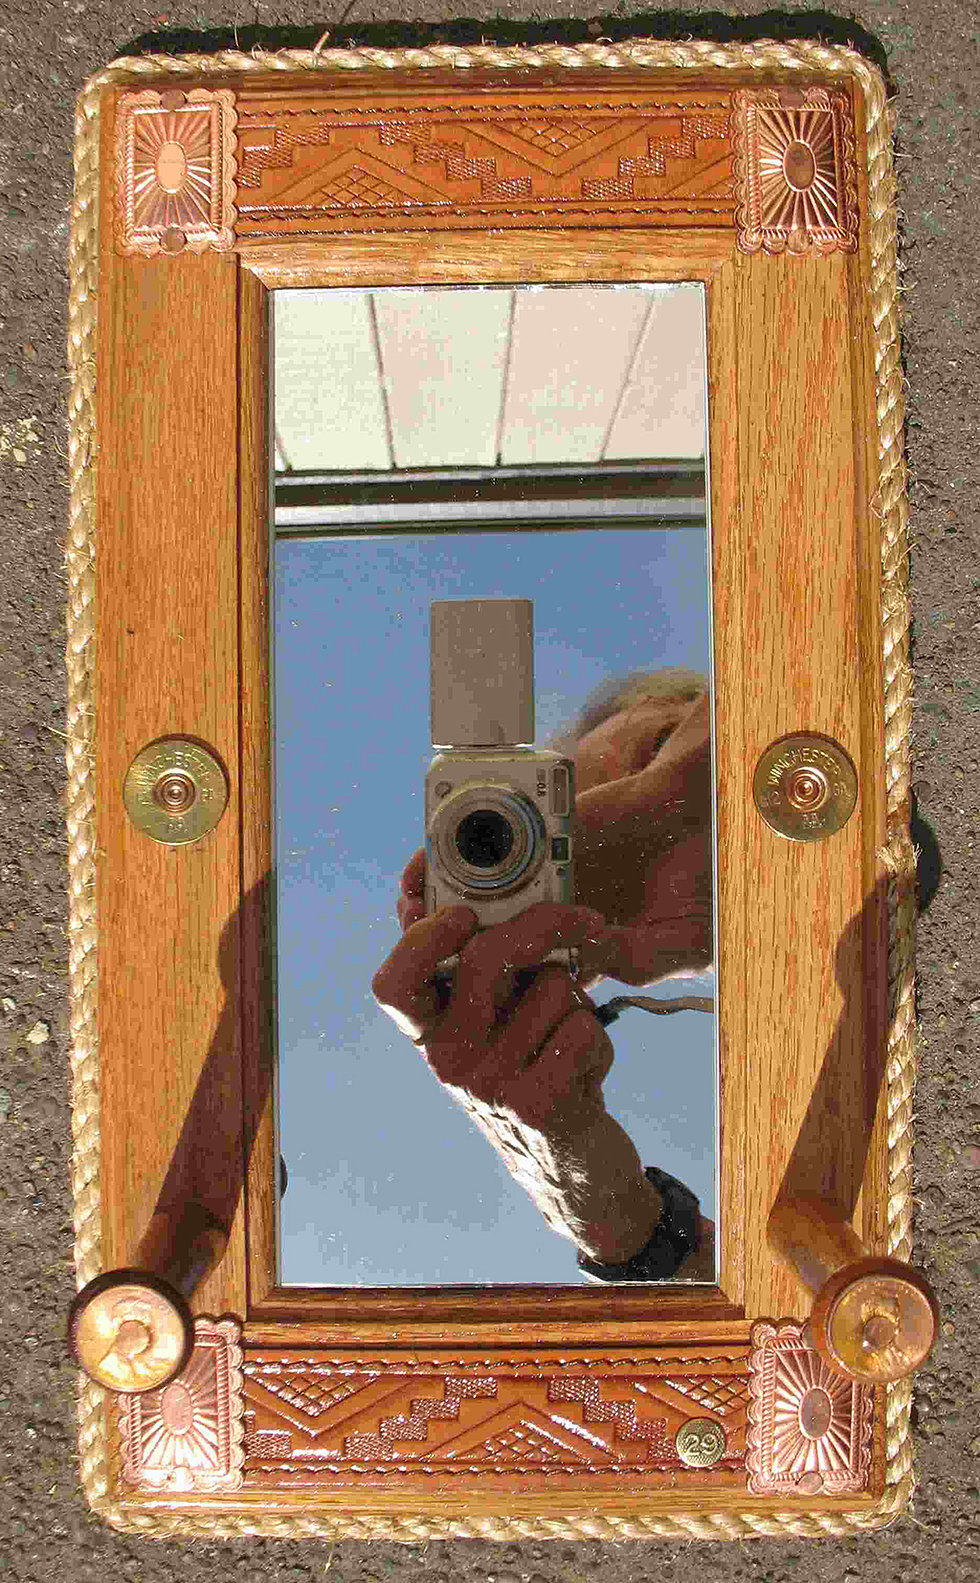 Western arts and crafts - Small Mirror Hanger